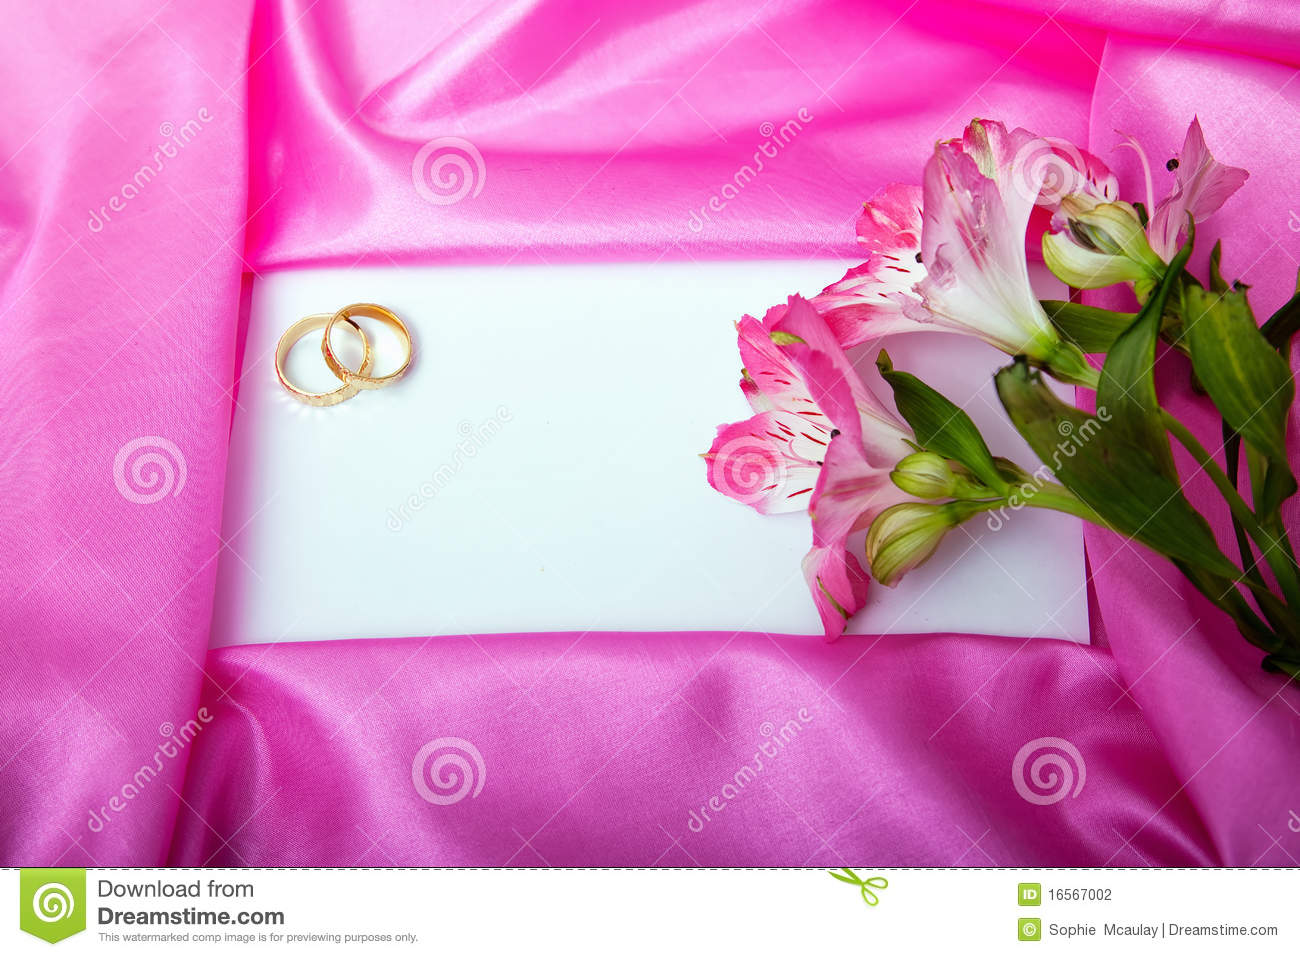 Wedding invite blank stock photo. Image of announcement - 16567002